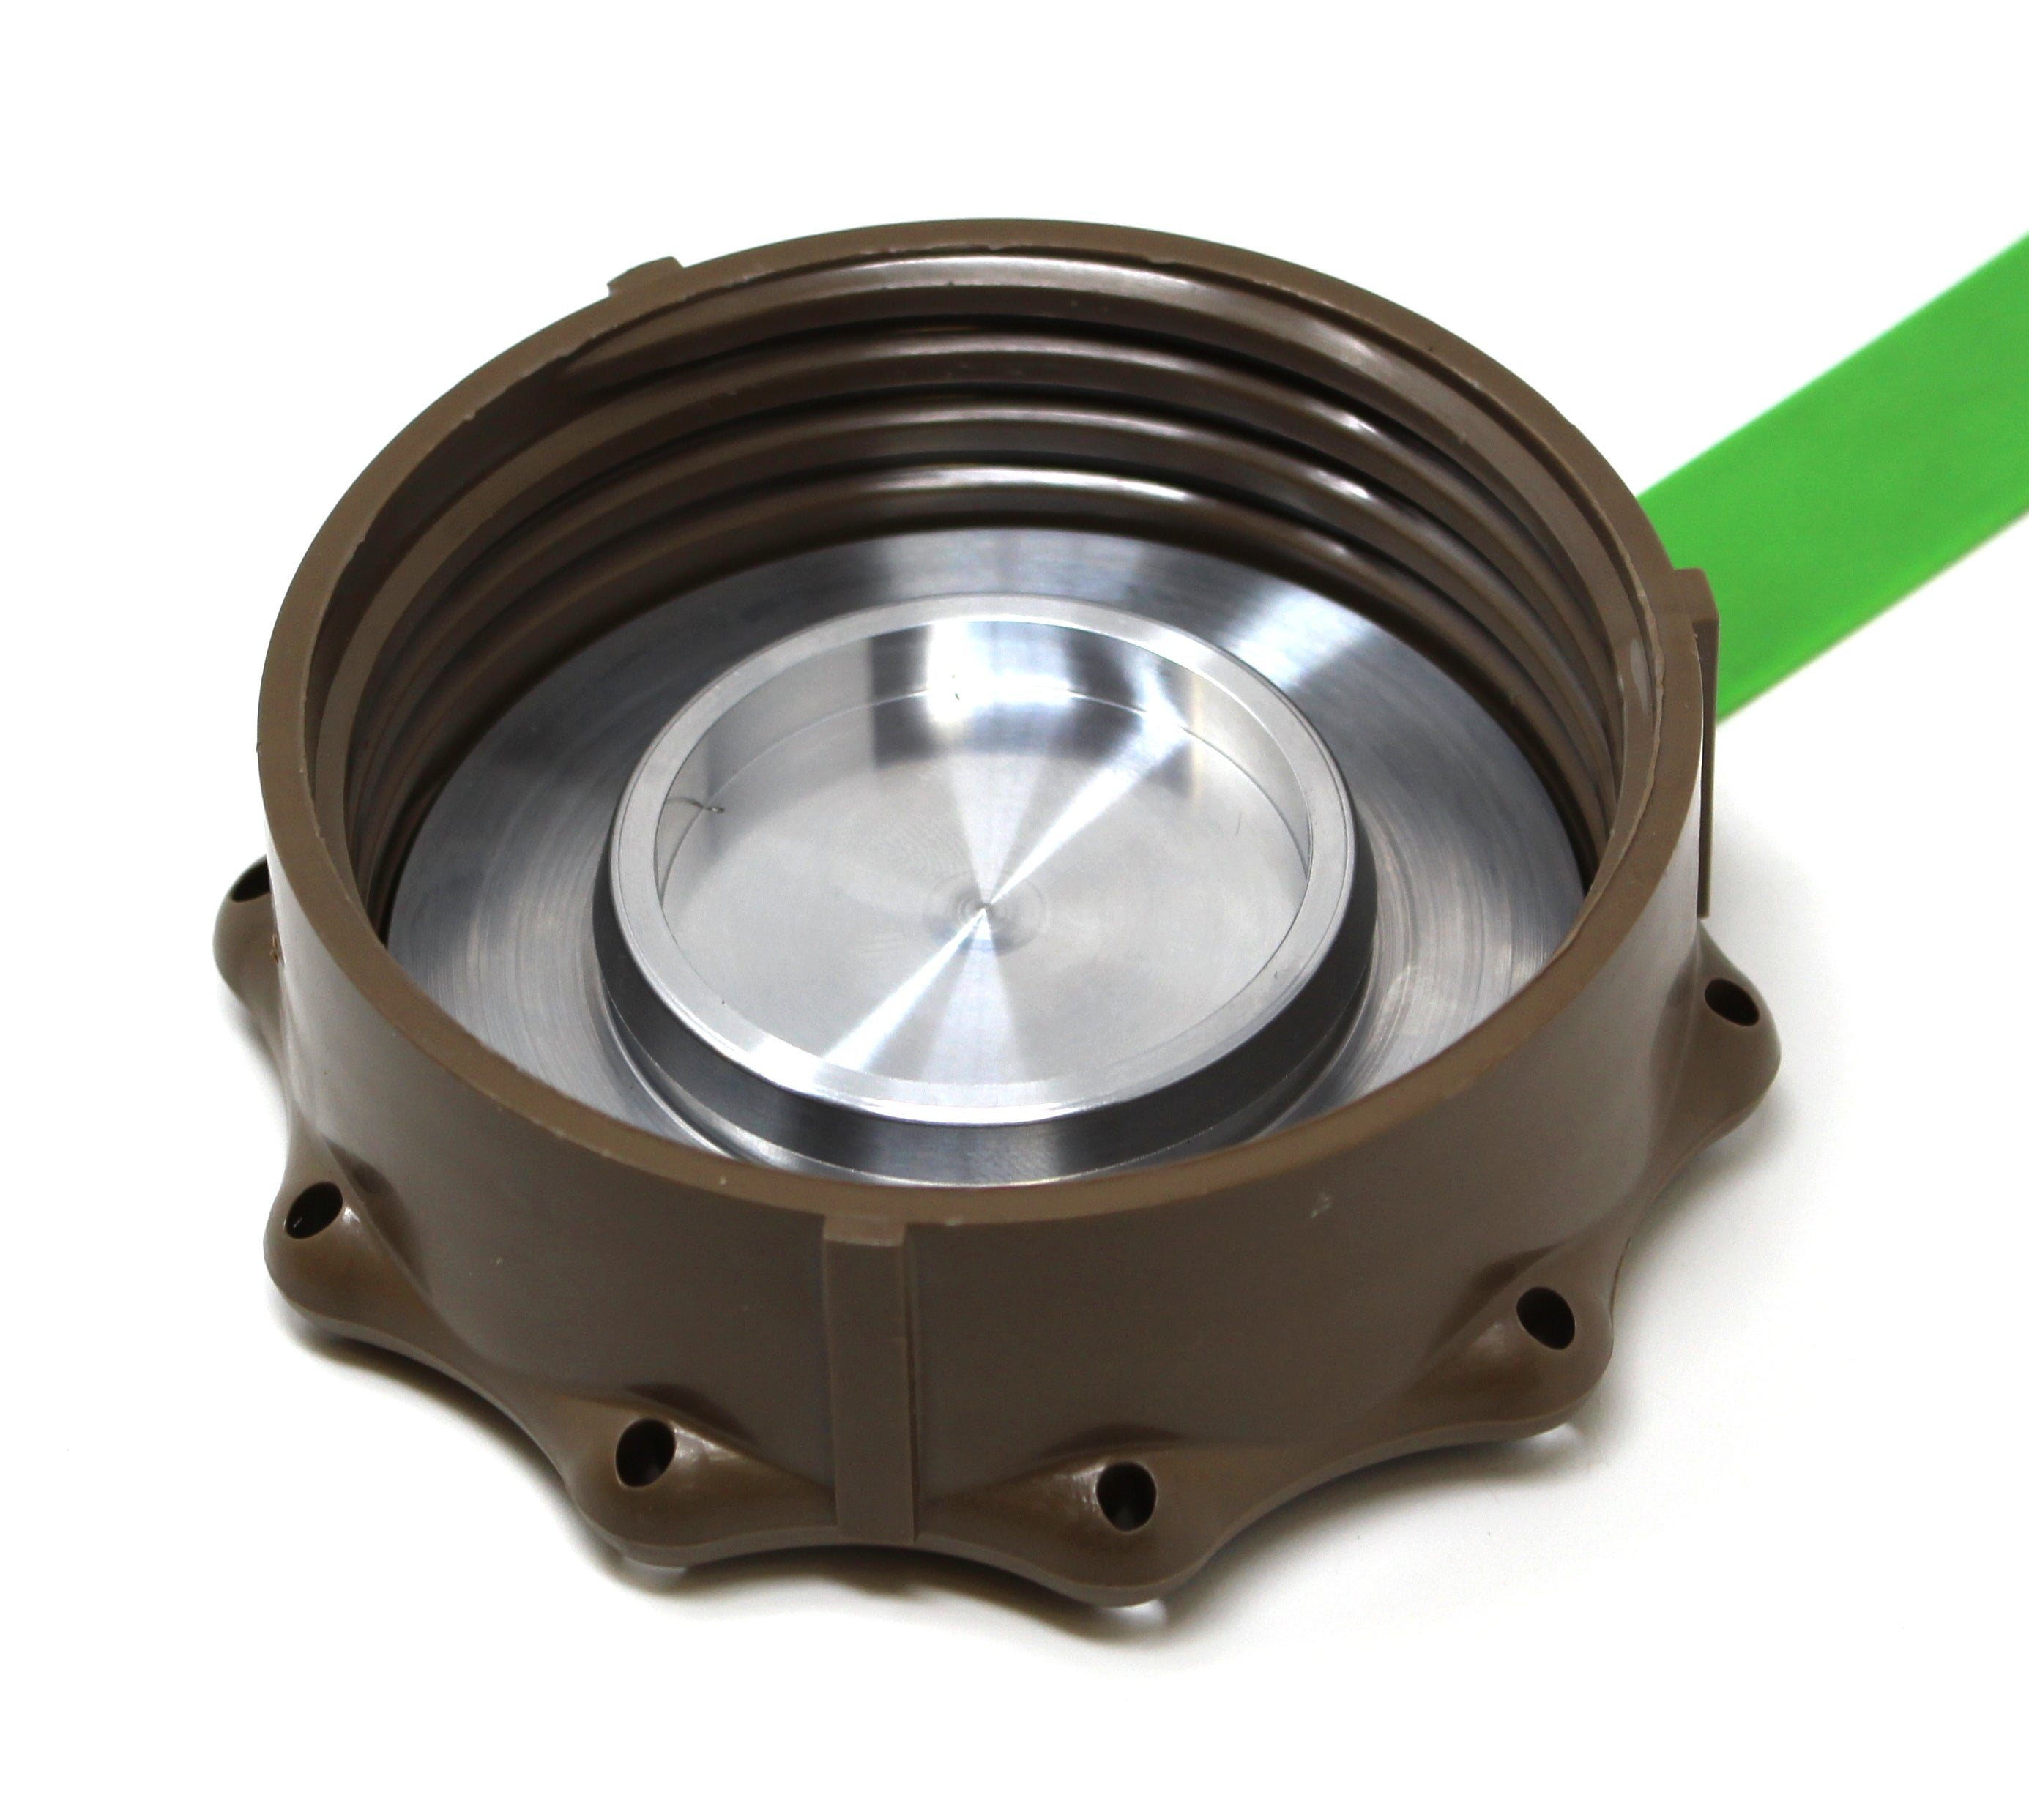 Military Fuel Can Aluminum Flange Compatible with Scepter MFC